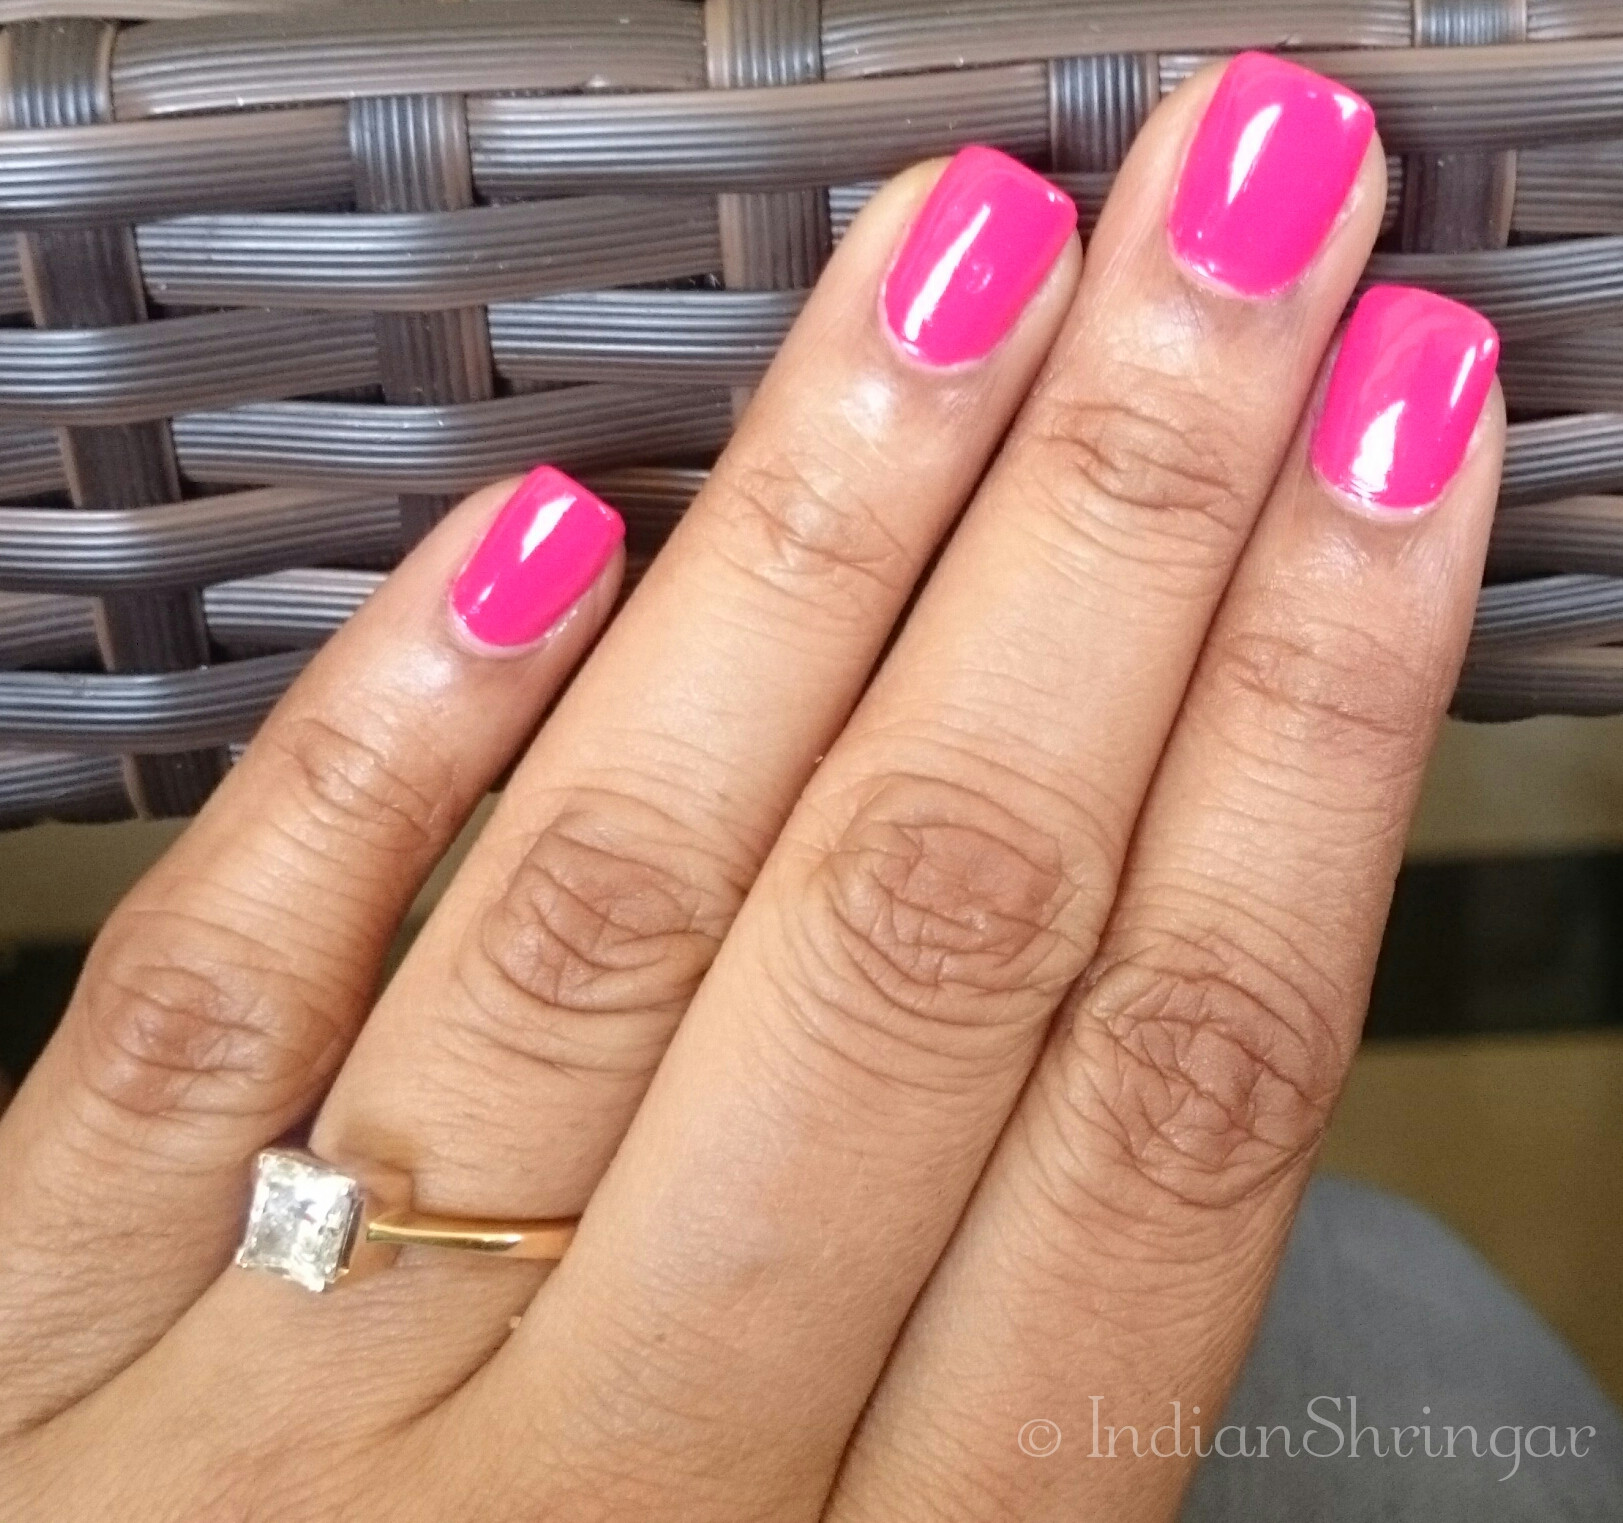 Maniküre Gel  All About Gel Nails The Procedure and The Misconceptions